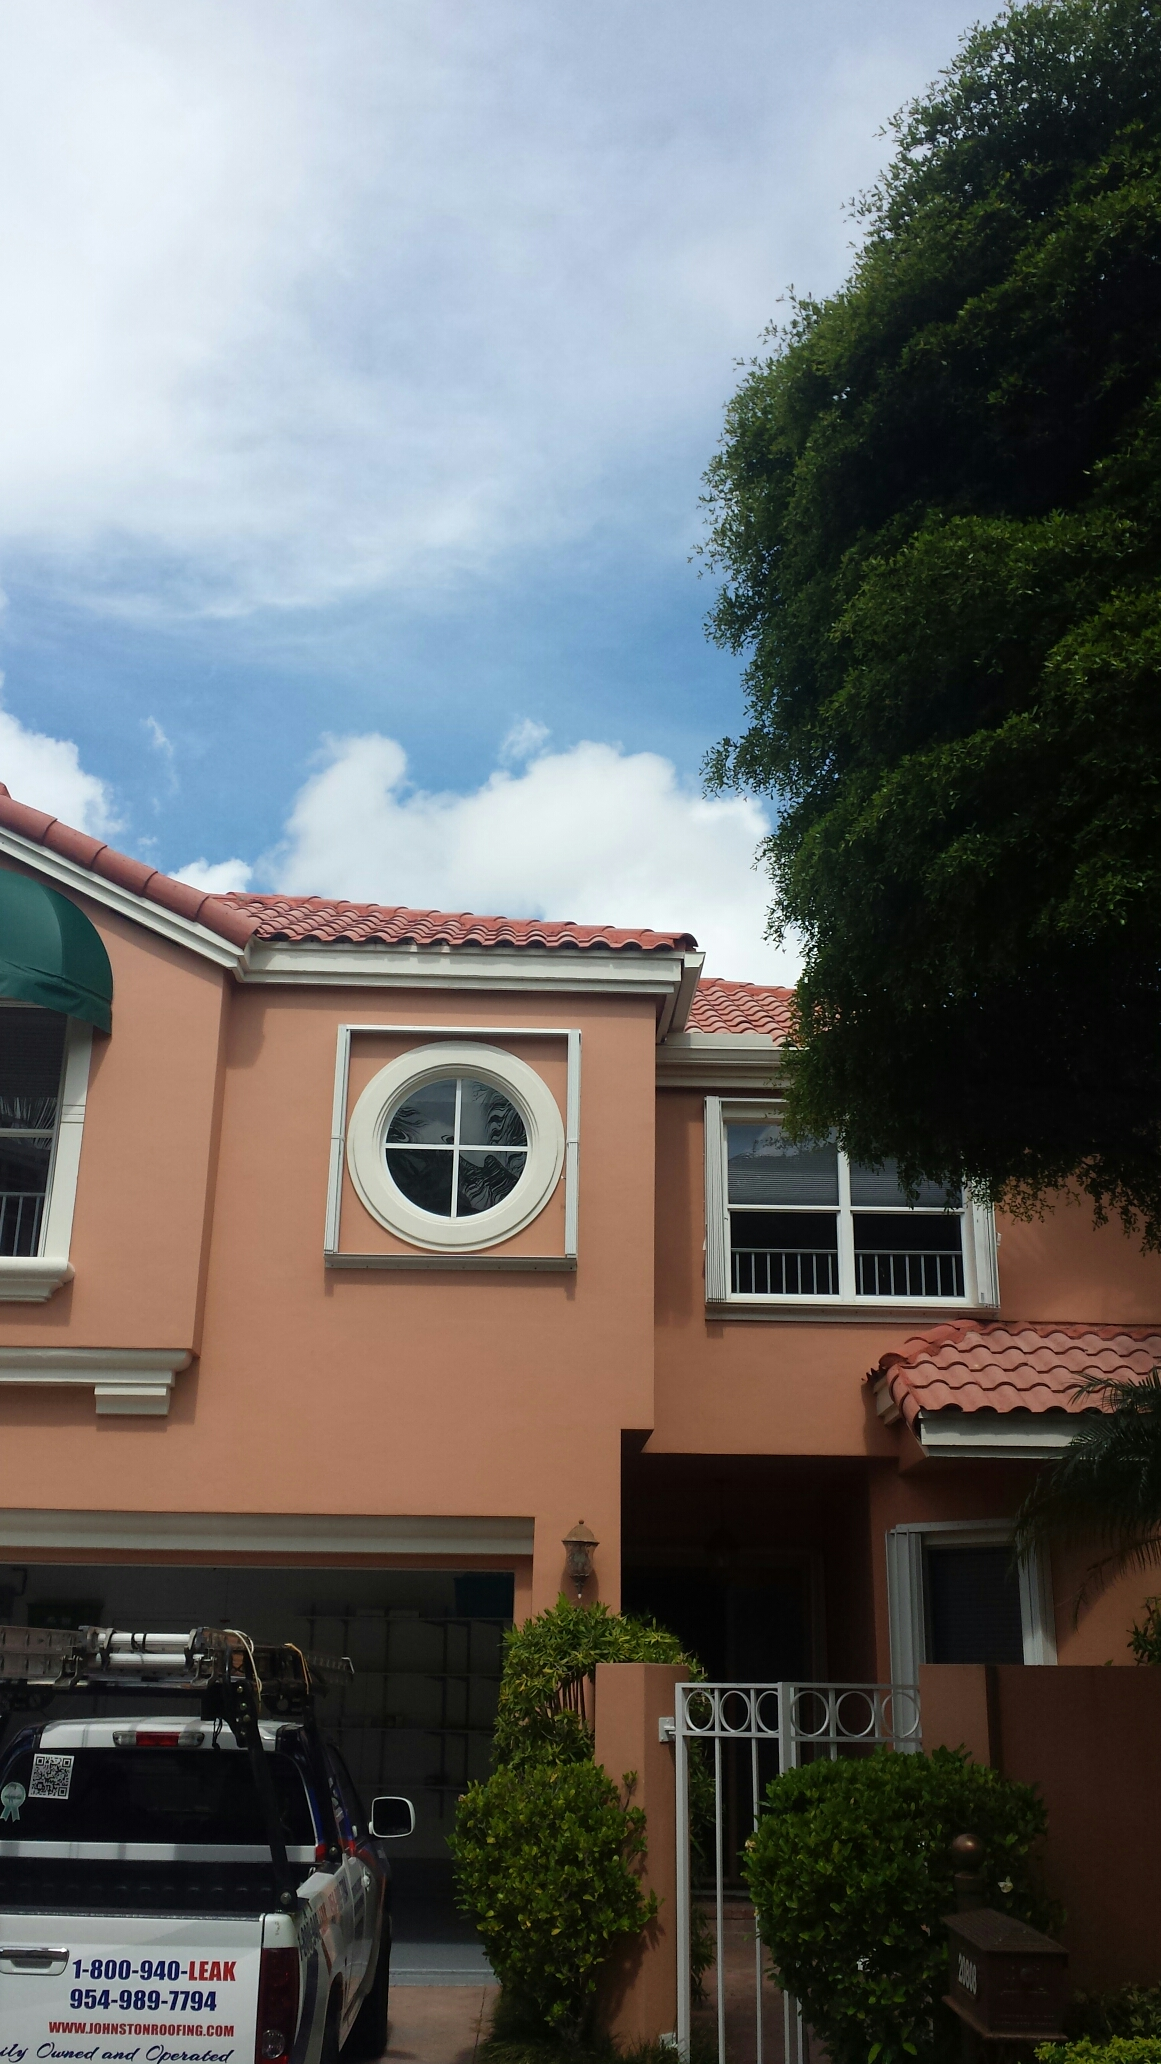 Aventura, FL - Tile roof repair estimate at Aventura